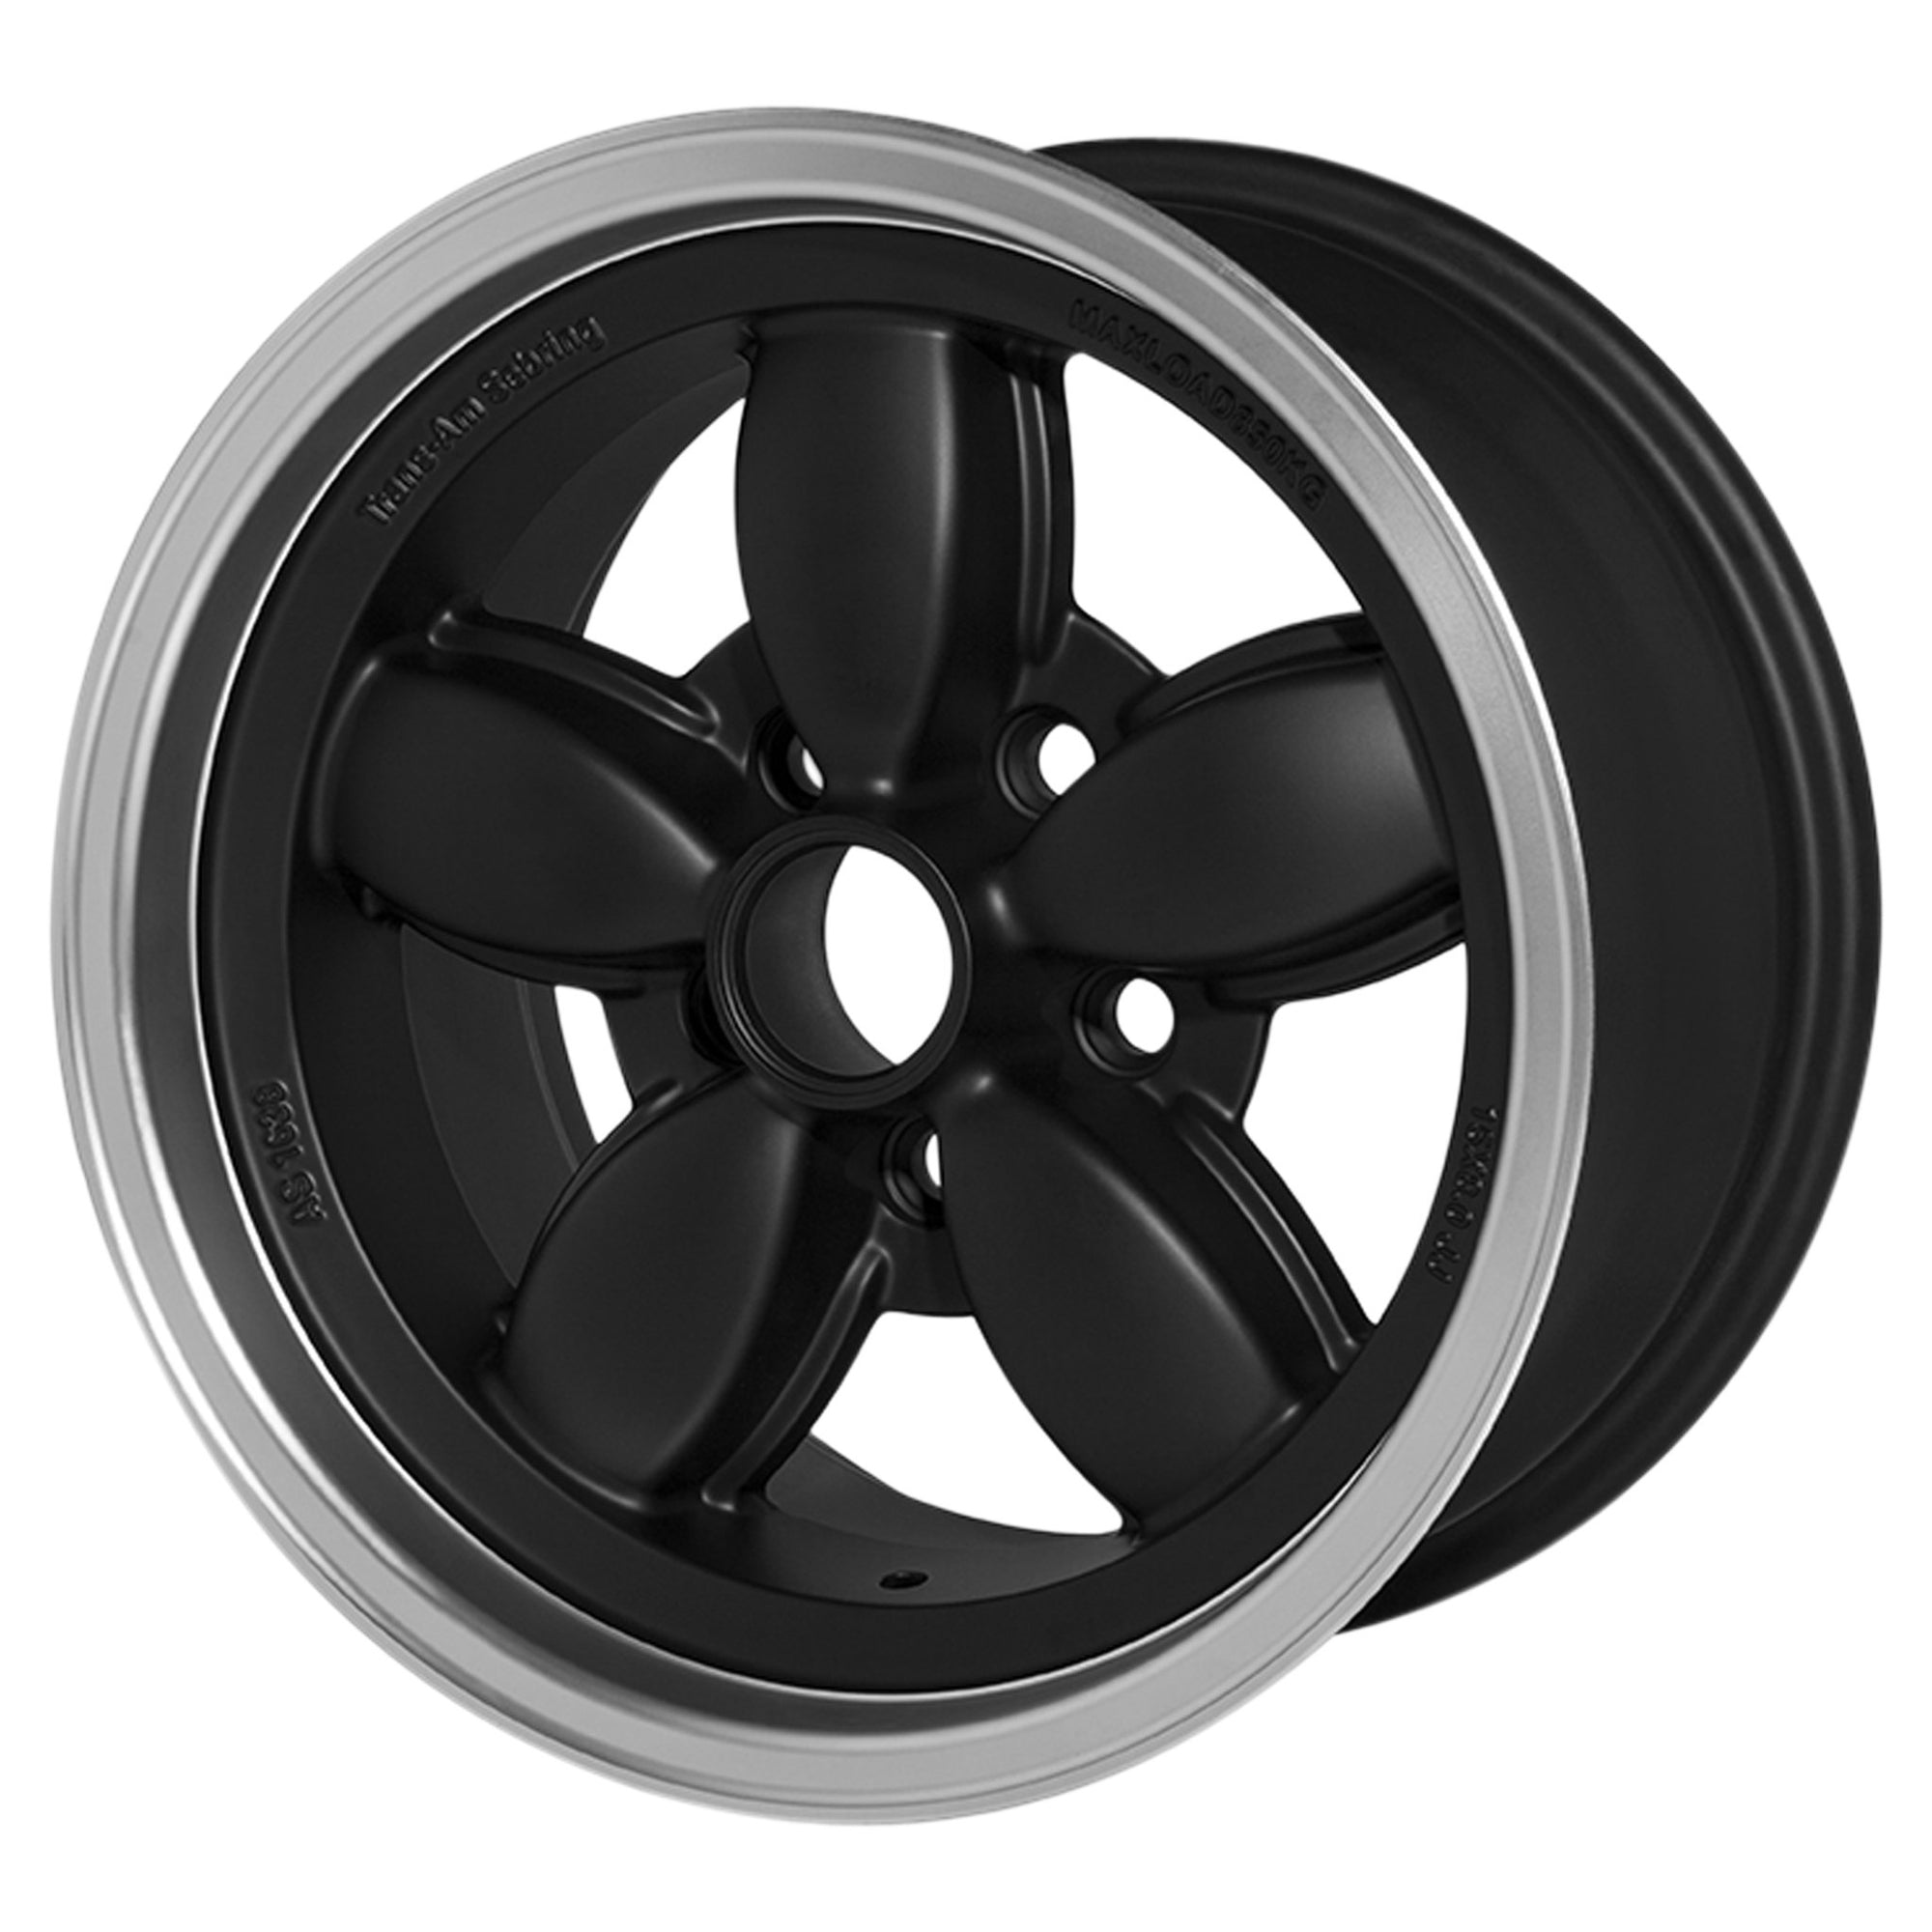 Sebring Rims & Wheels